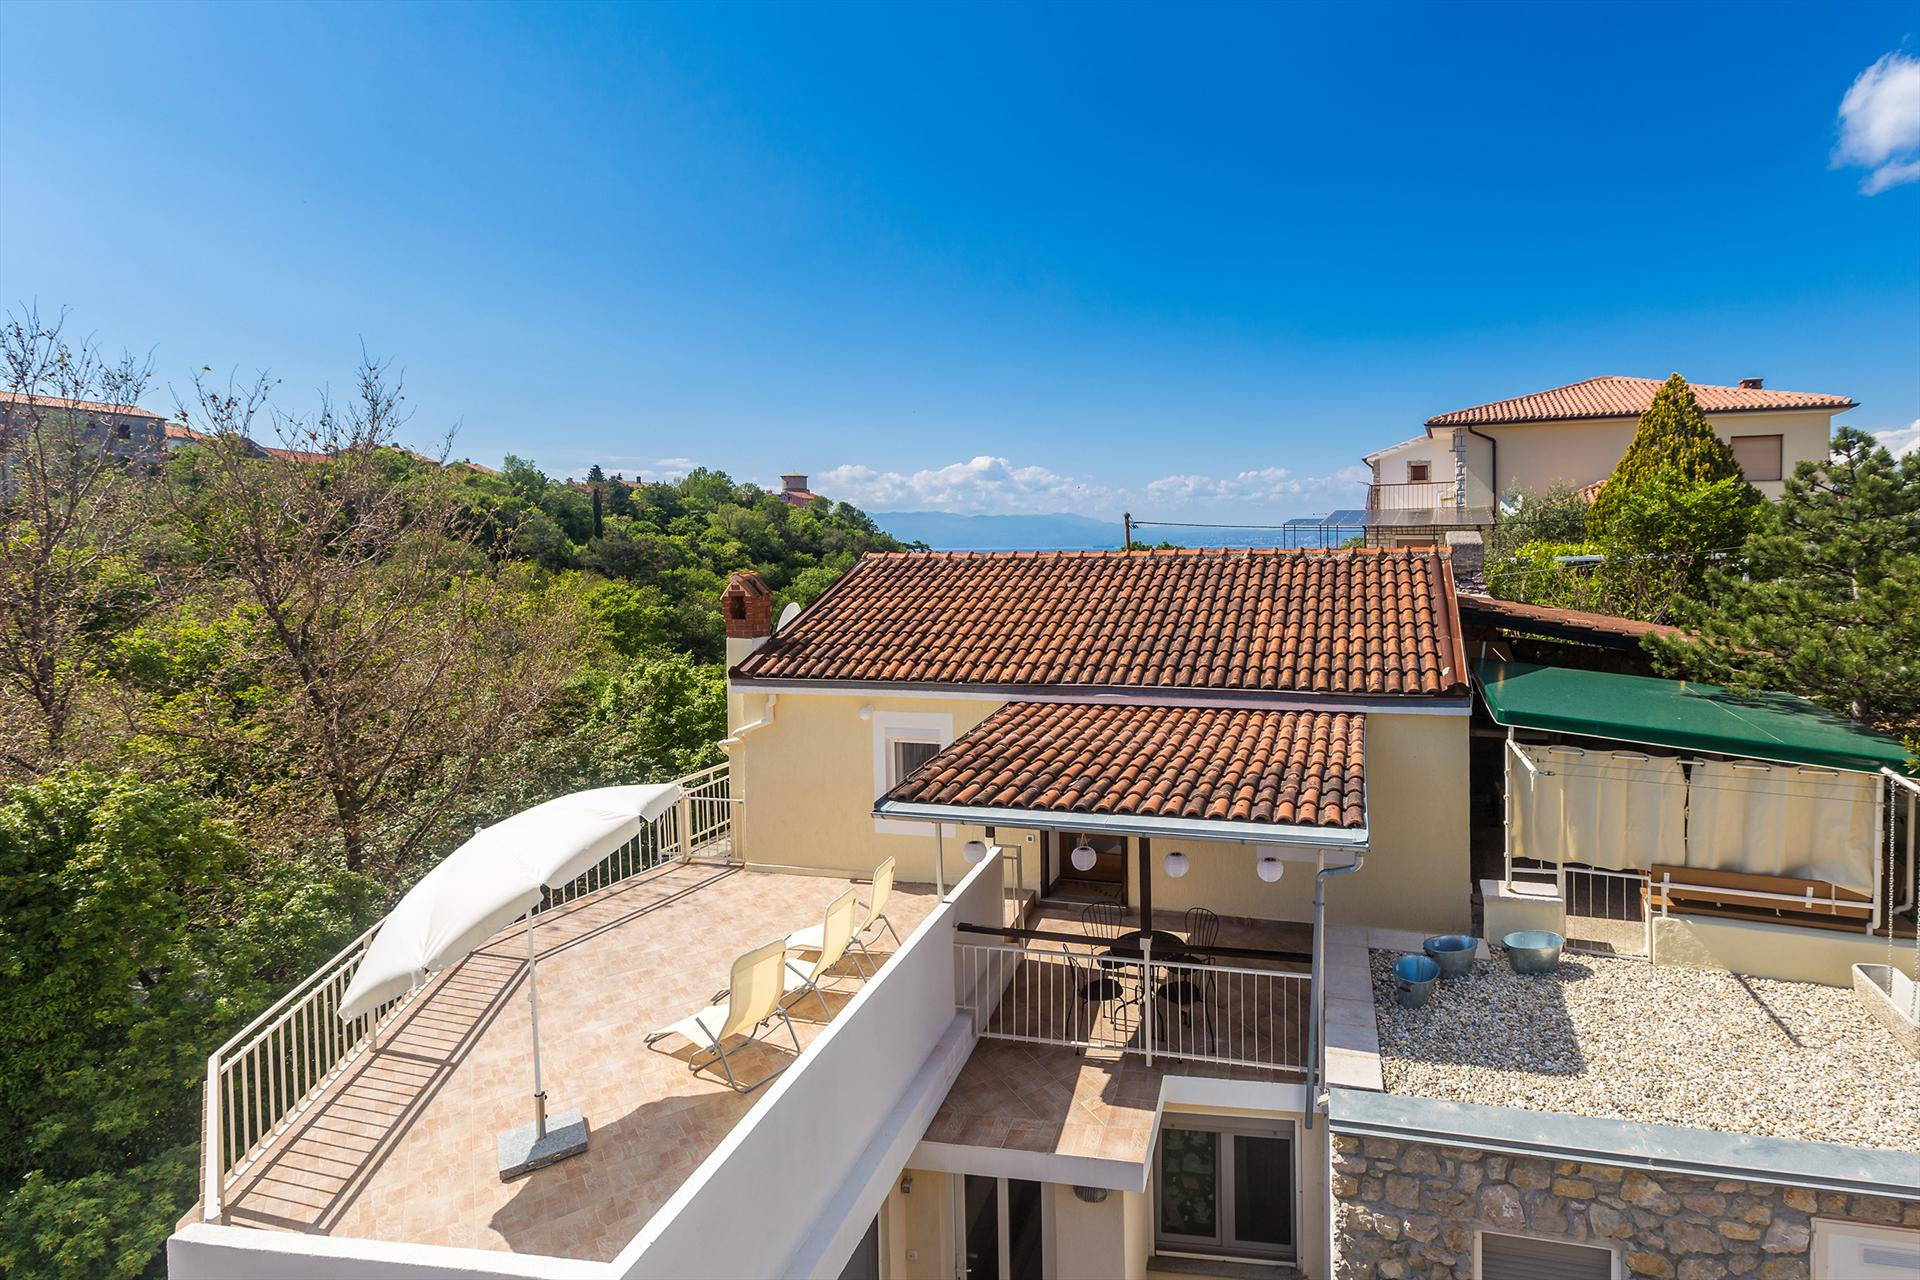 Charming apartment - terrace with nature view and sea view, private parking, wi-fi, Schöne und klassische Ferienwohnung in Omišalj, Island Krk, Kroatien für 4 Personen...